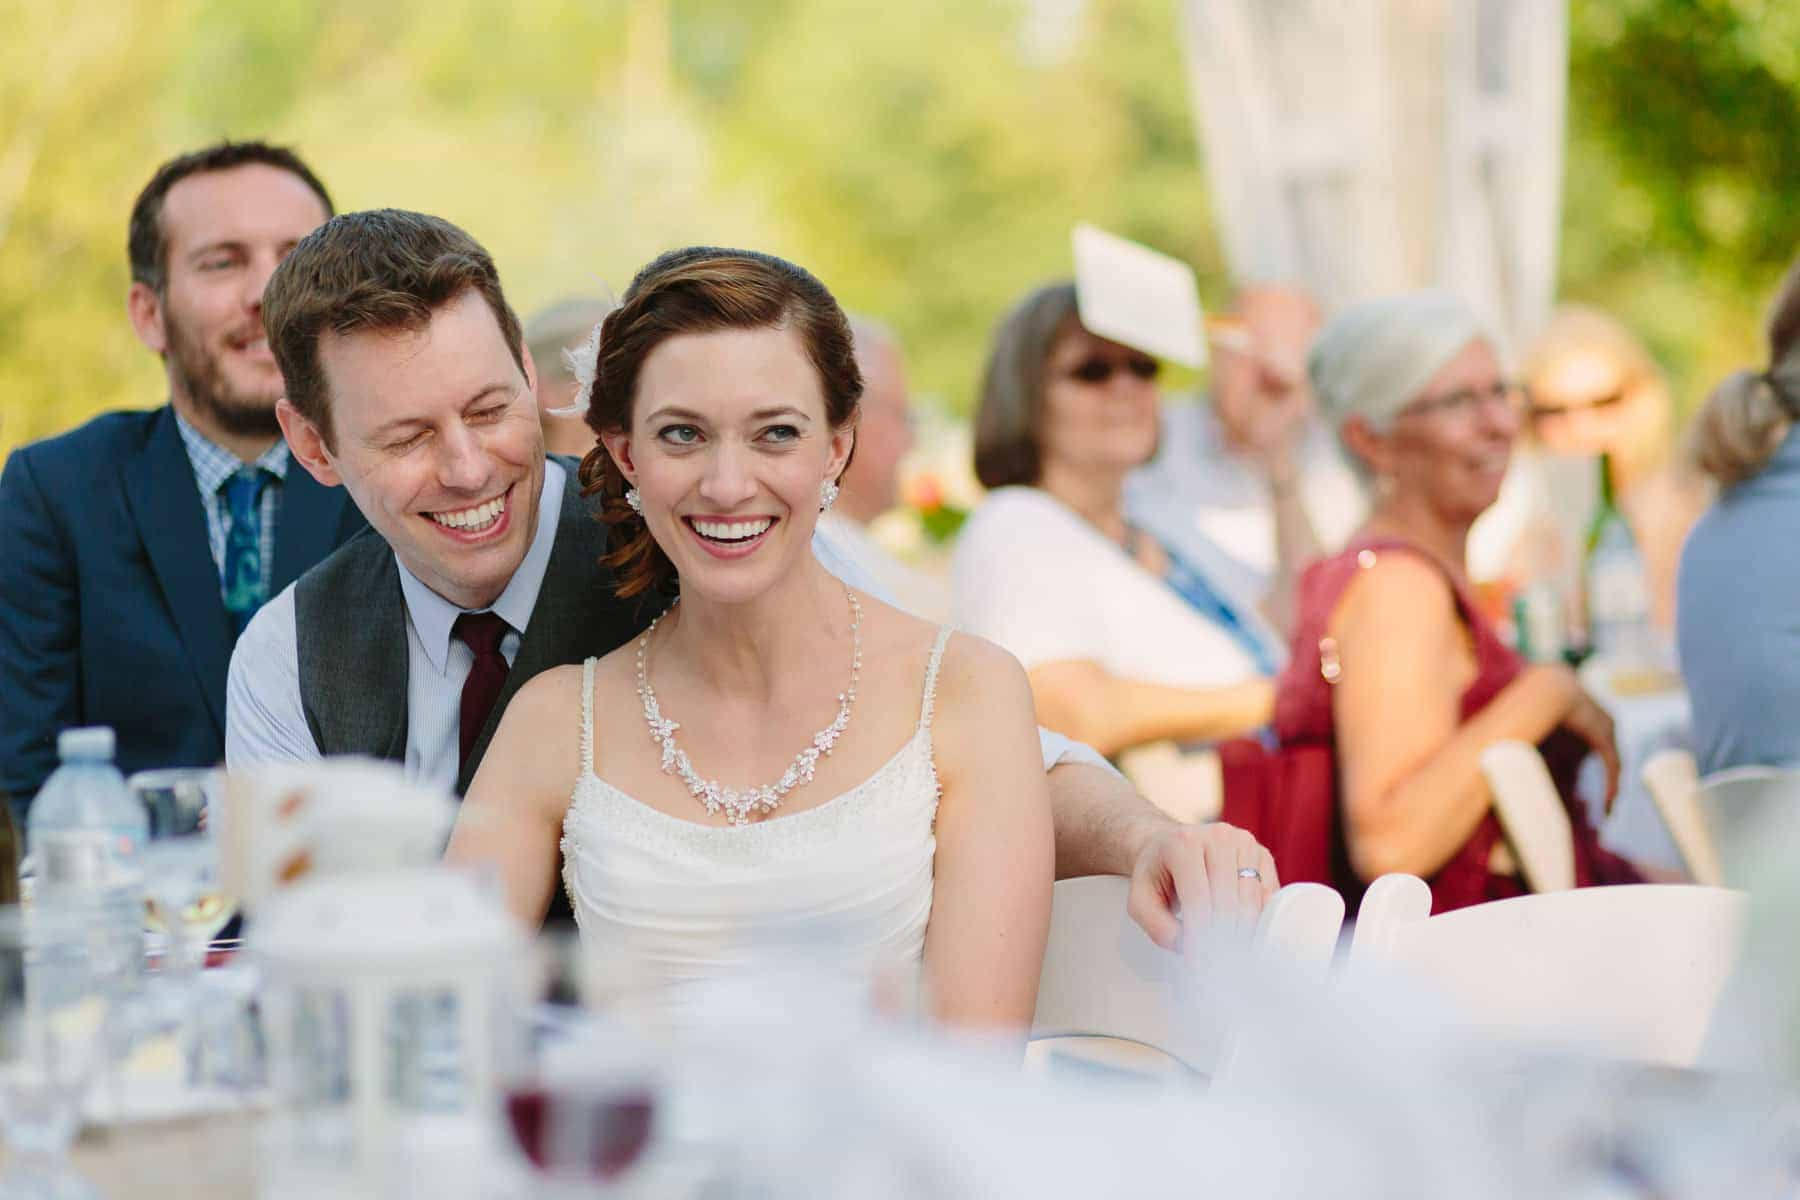 The bride and groom laugh at a speech in these backyard wedding photos.